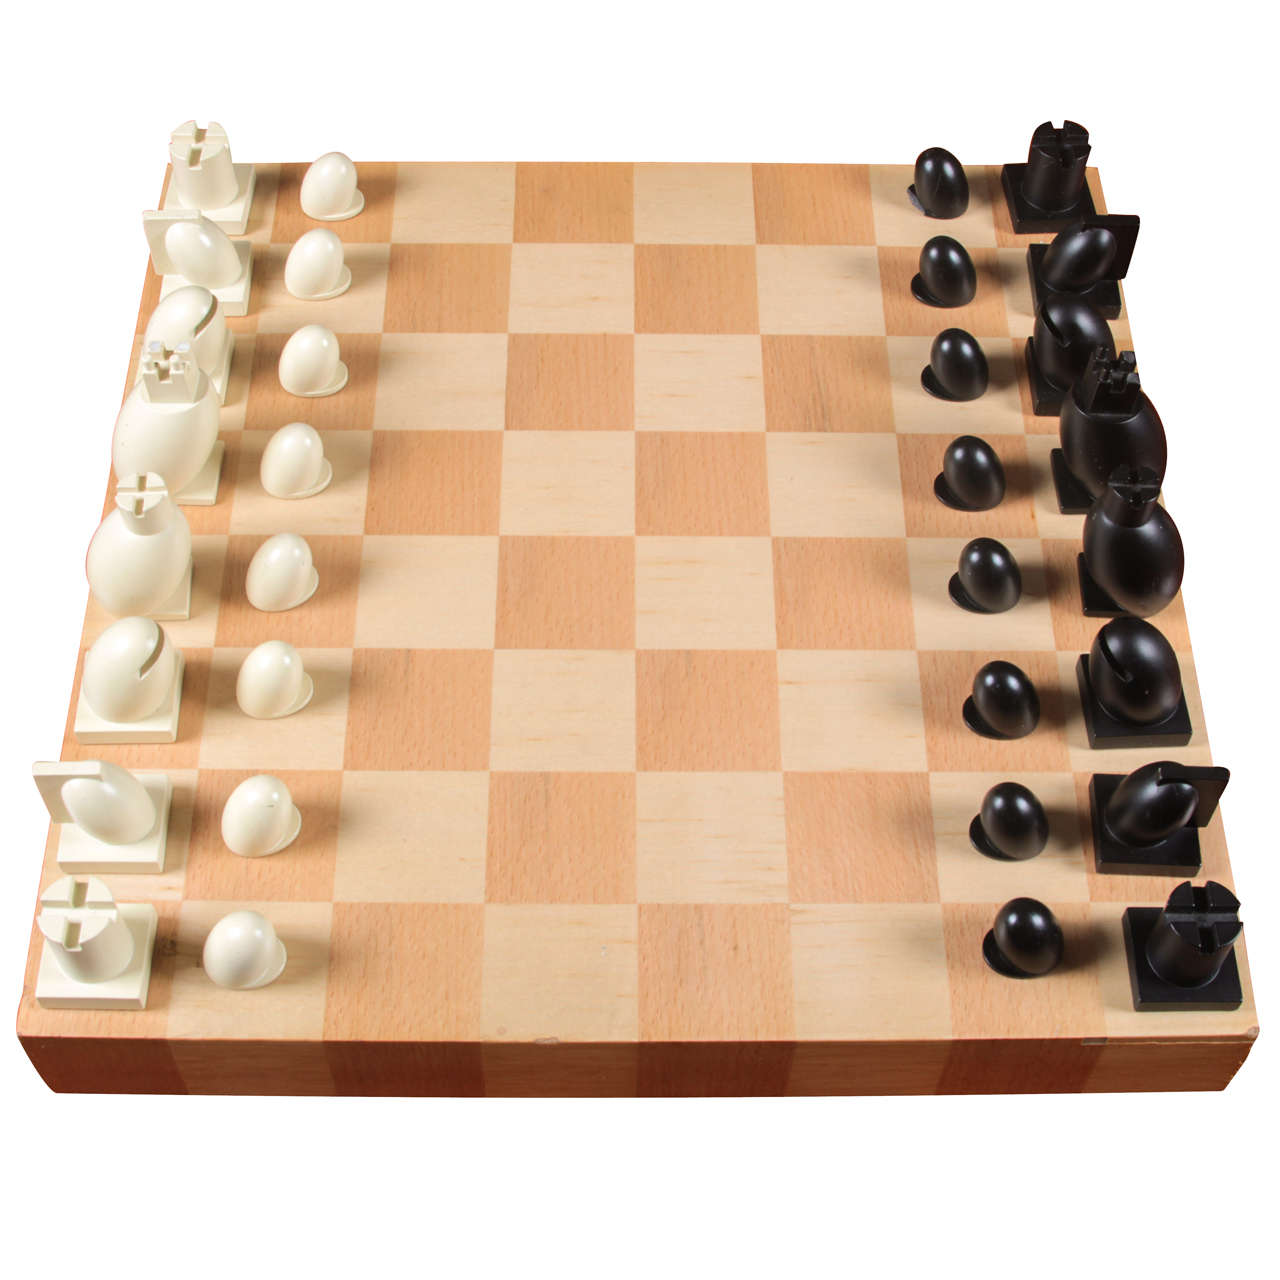 Michael Graves Chess Set, circa 2000 For Sale at 1stdibs